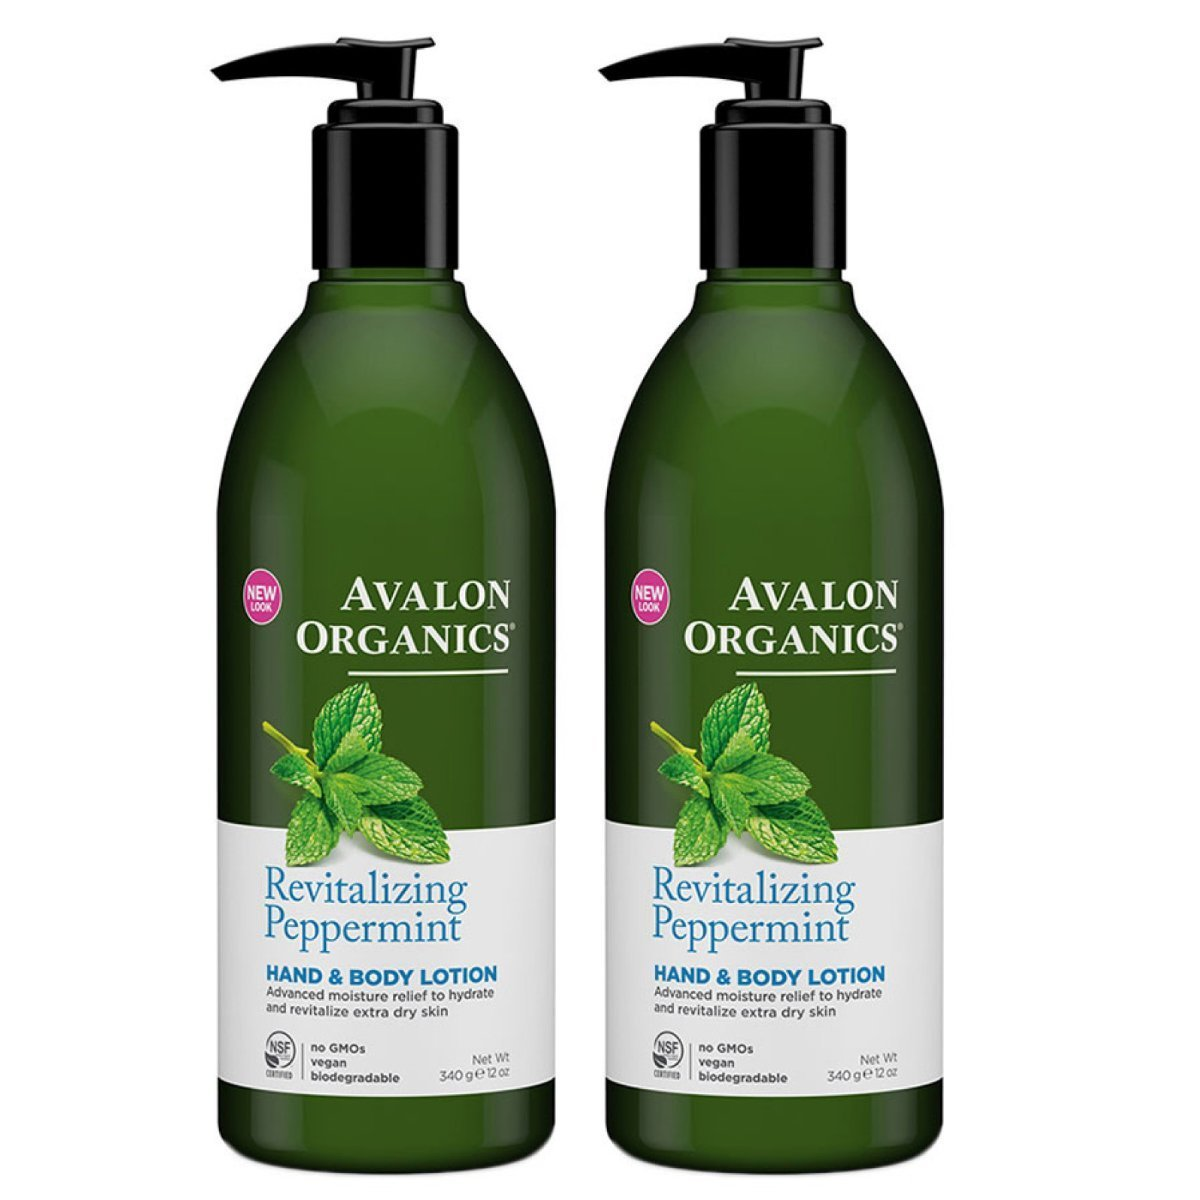 Avalon Organics Hand and Body Lotion Peppermint With Organic Peppermint Essential Oil, Organic Aloe, Vitamin E and the Rich Oat Nutrition of Beta-Glucan, 12 oz (340 g) (Pack of 2)